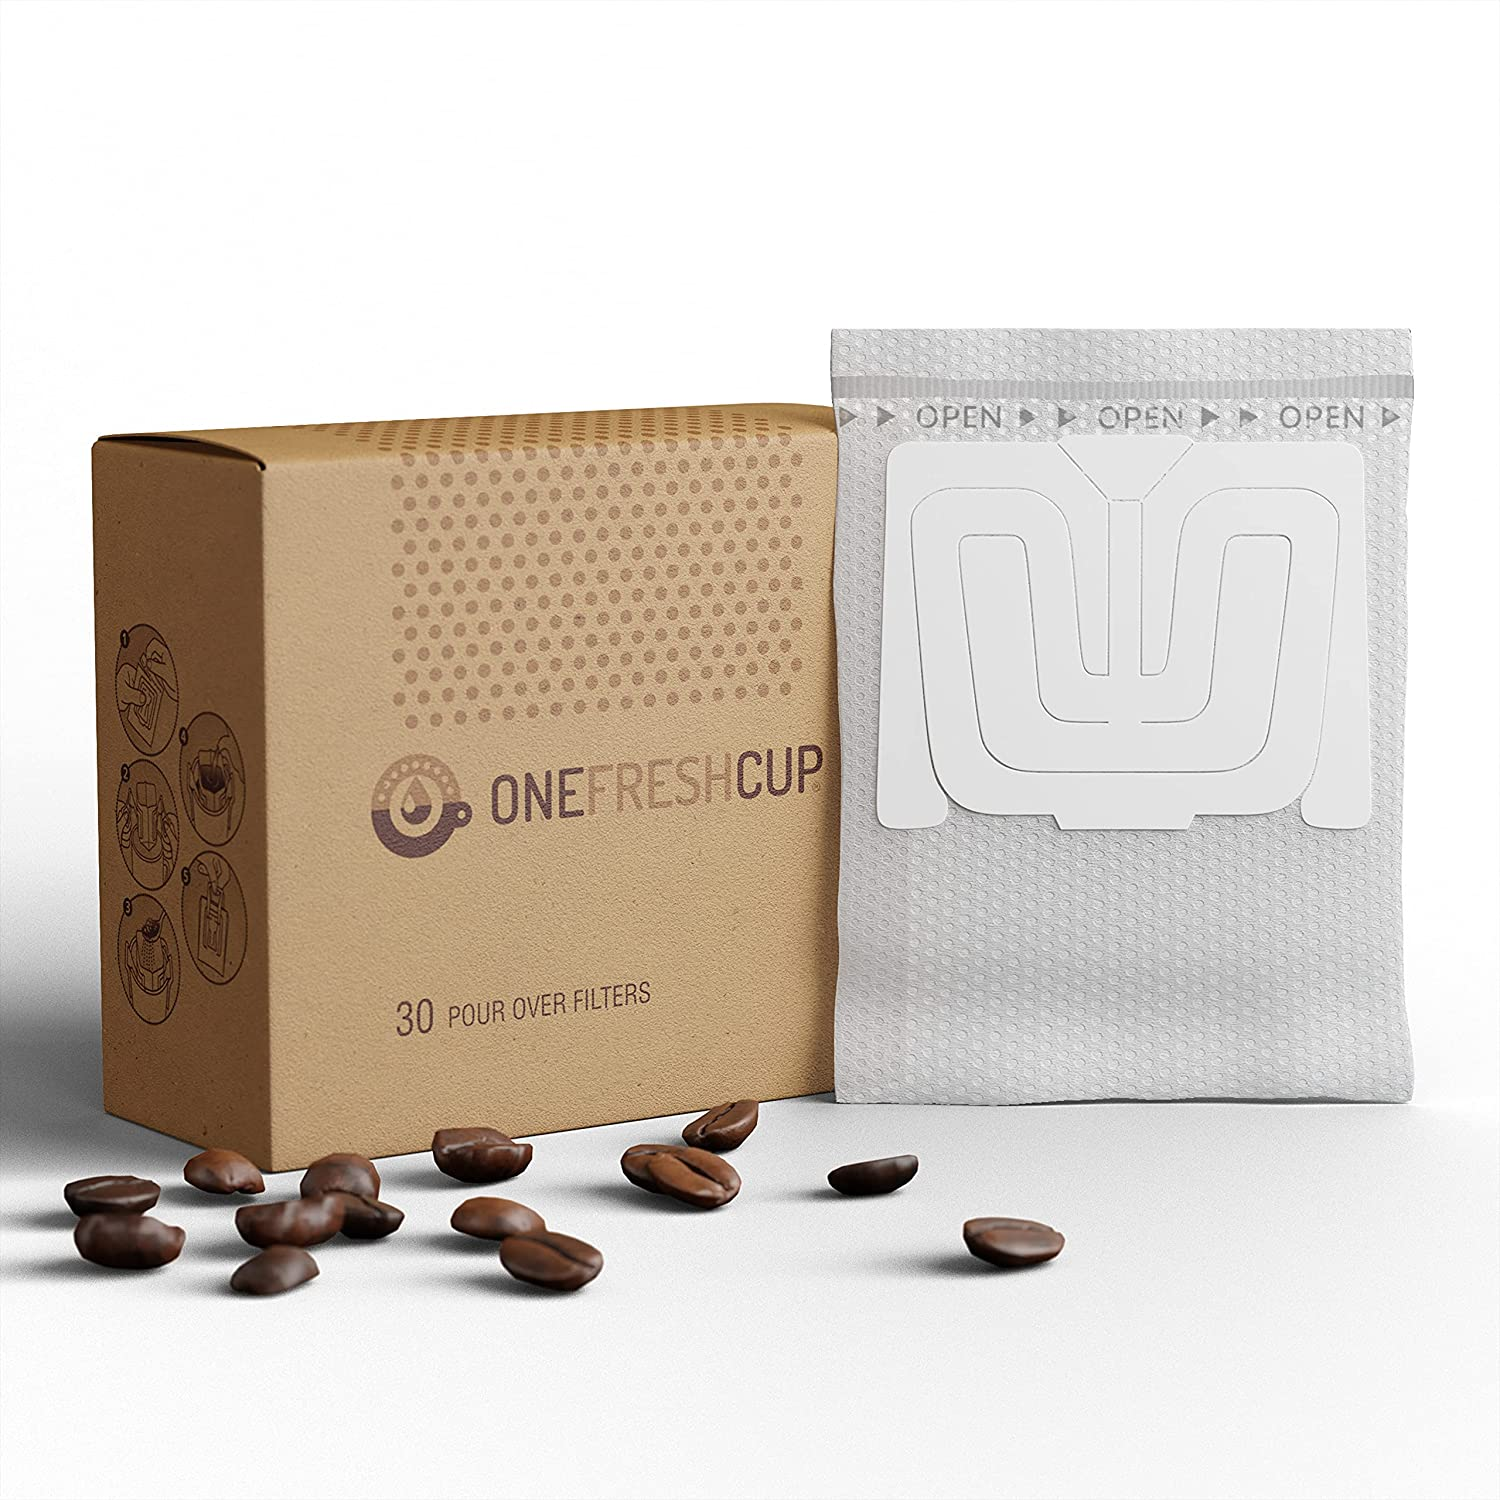 One Fresh Cup Very popular Coffee - Single Portable Over Special price Serve Cof Pour Empty